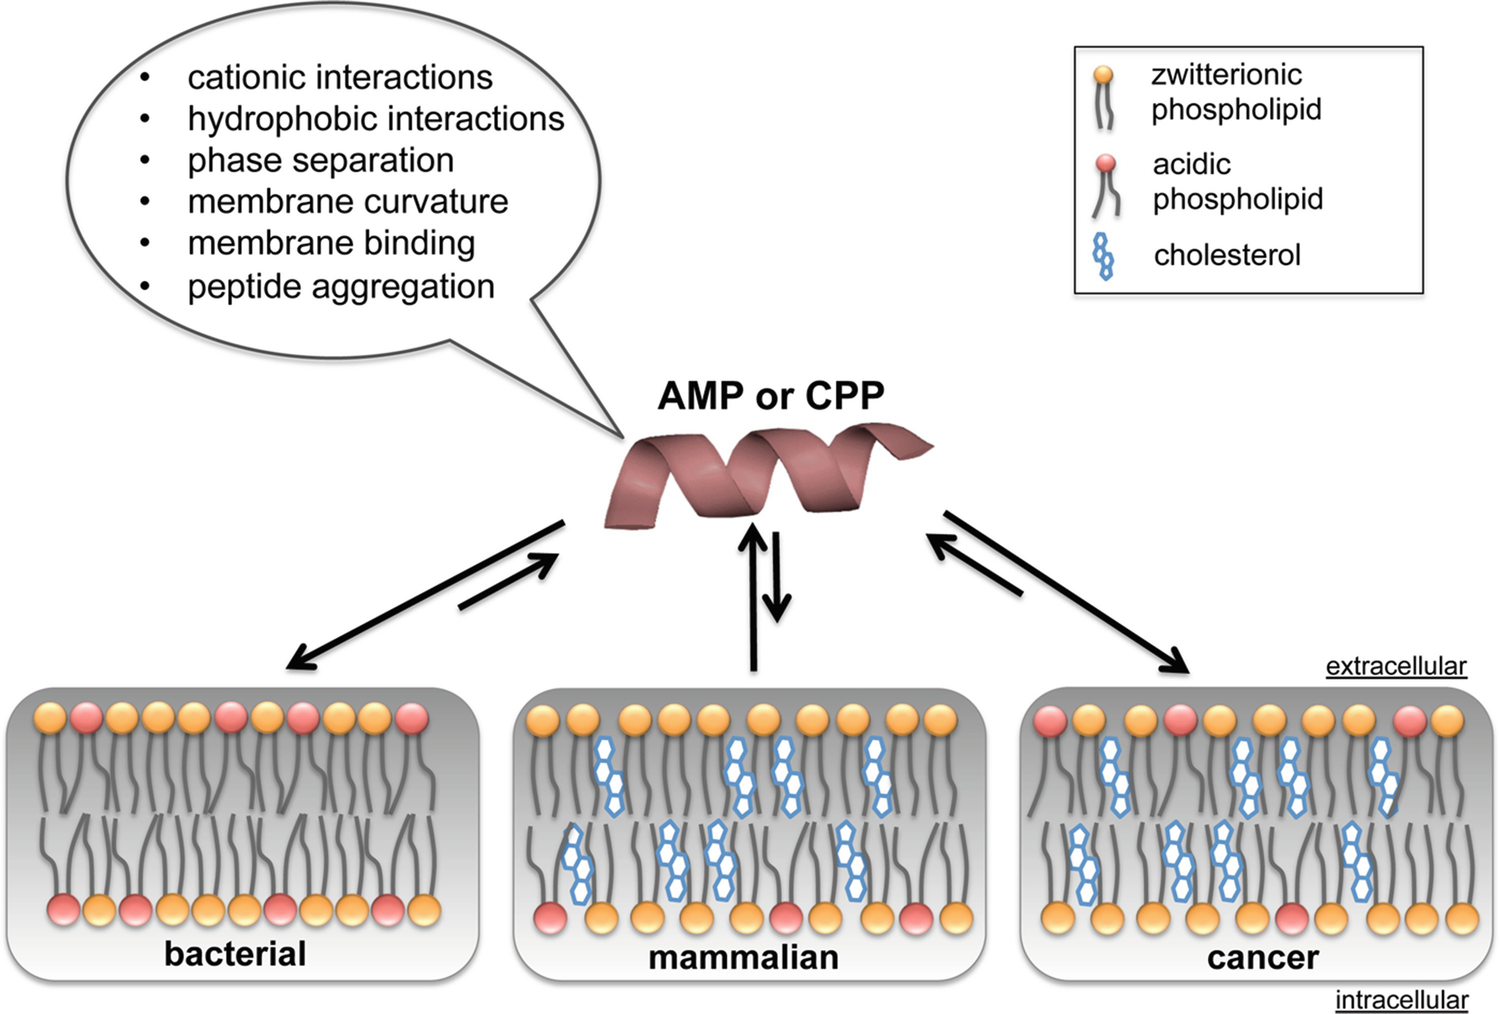 Antimicrobial and Cell-Penetrating Peptides: How to Understand Two